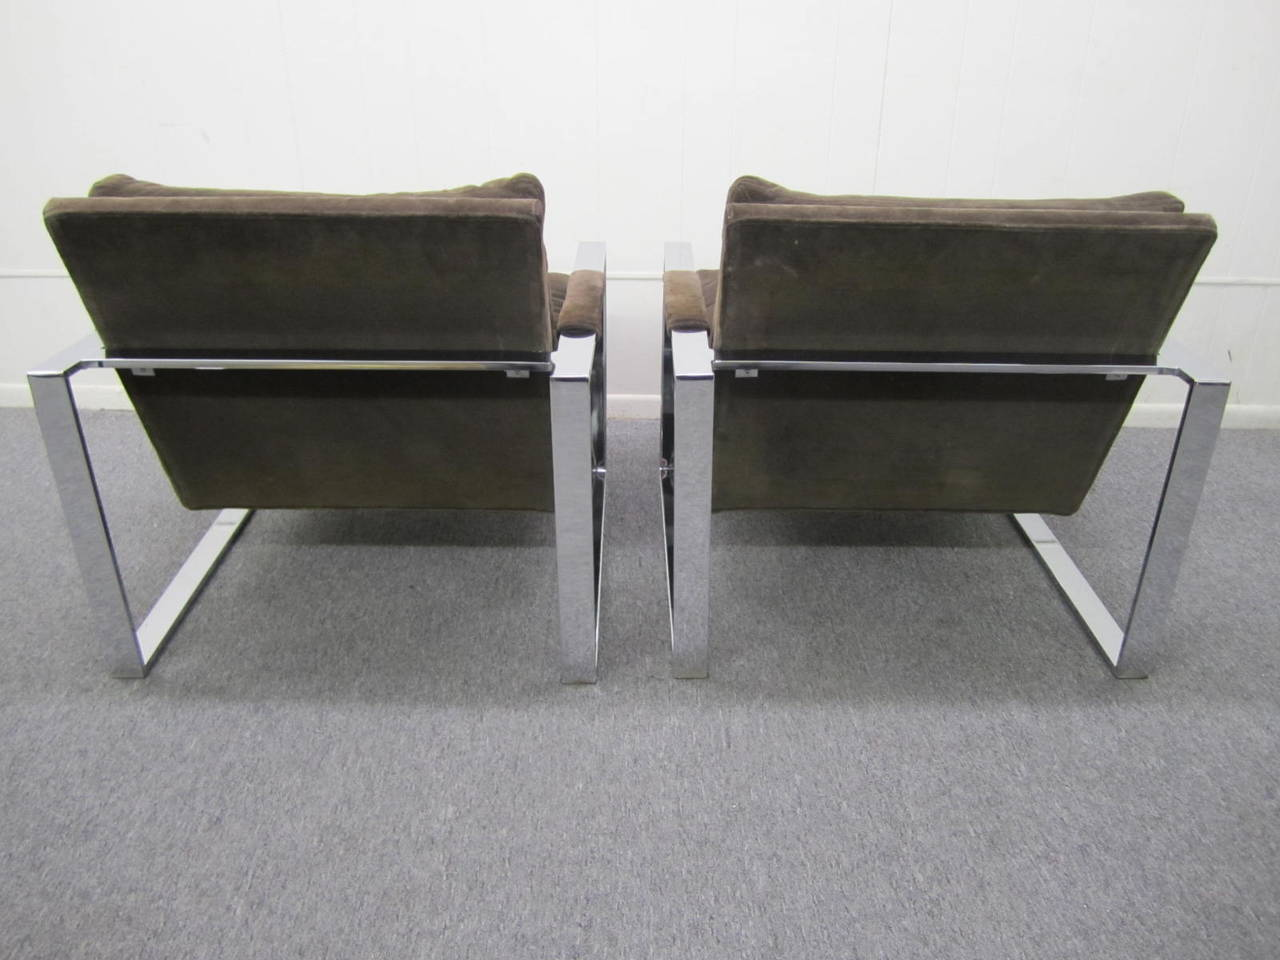 Fabulous pair of signed Milo Baughman for Thayer Coggin thick chrome cube lounge chairs. This style is a bit more rare than the normal cube chairs by Milo. The upholstery is the original chocolate cotton velvet and still looks very nice. The